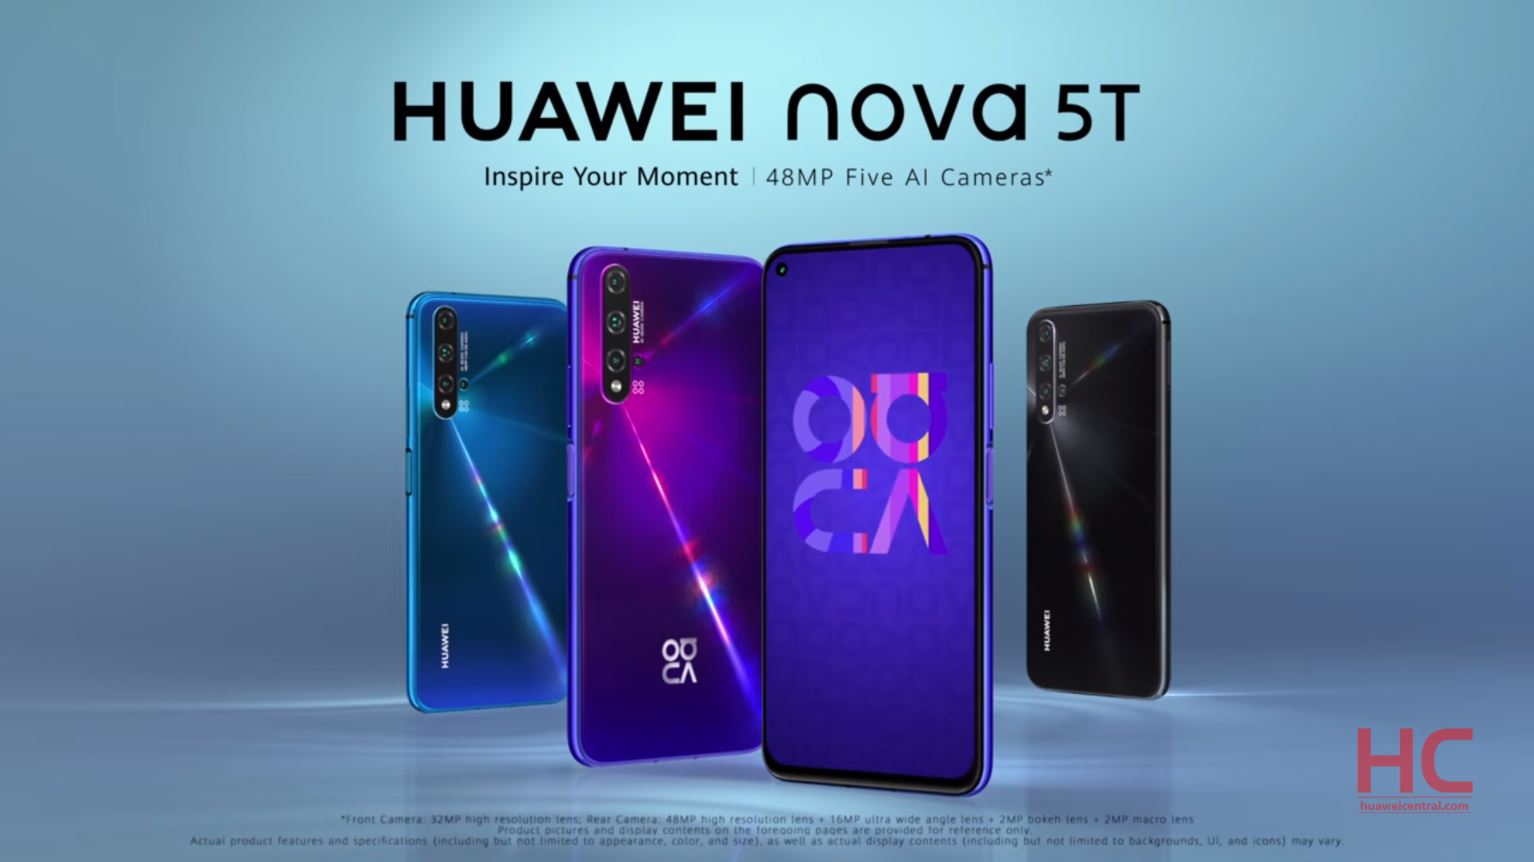 Huawei Nova 5t With Kirin 980 And Emui 9 1 Launched In Singapore